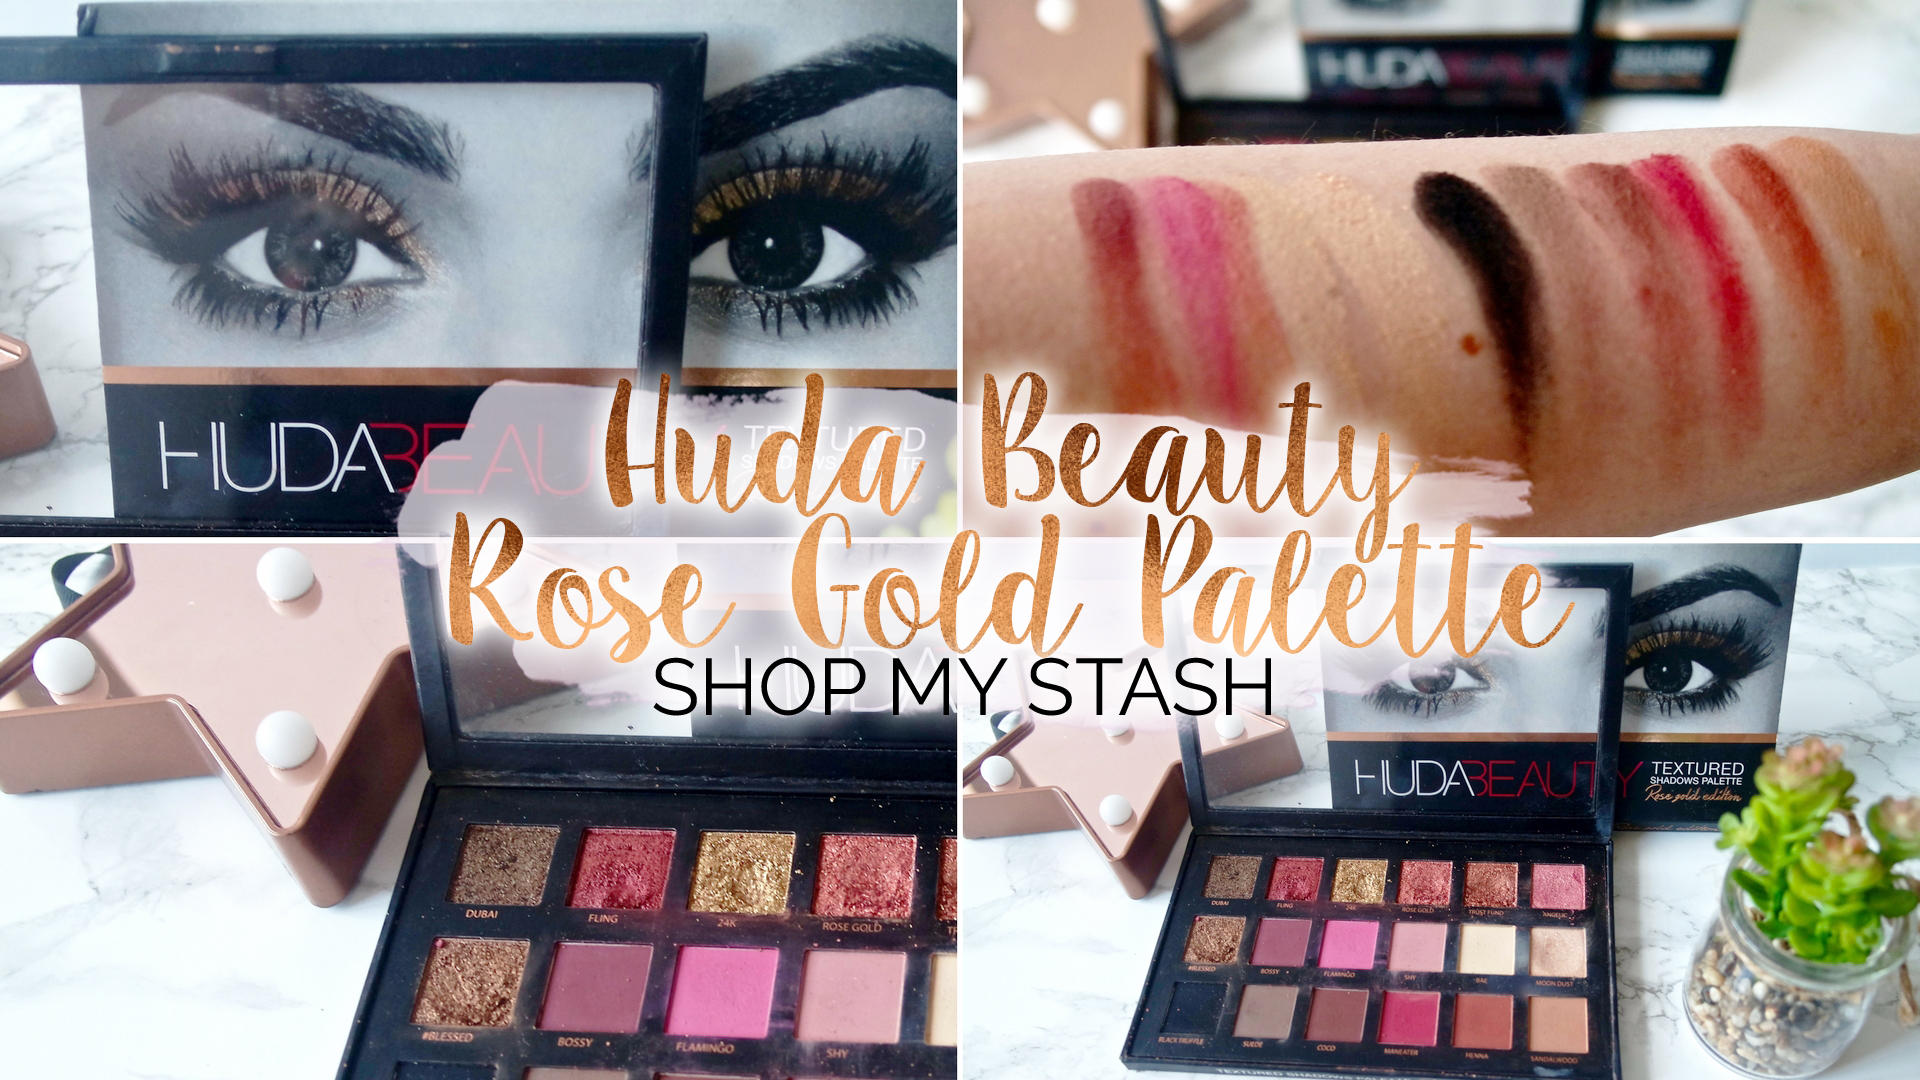 Huda Beauty - Rose Gold Palette (Shop My Stash) || Beauty